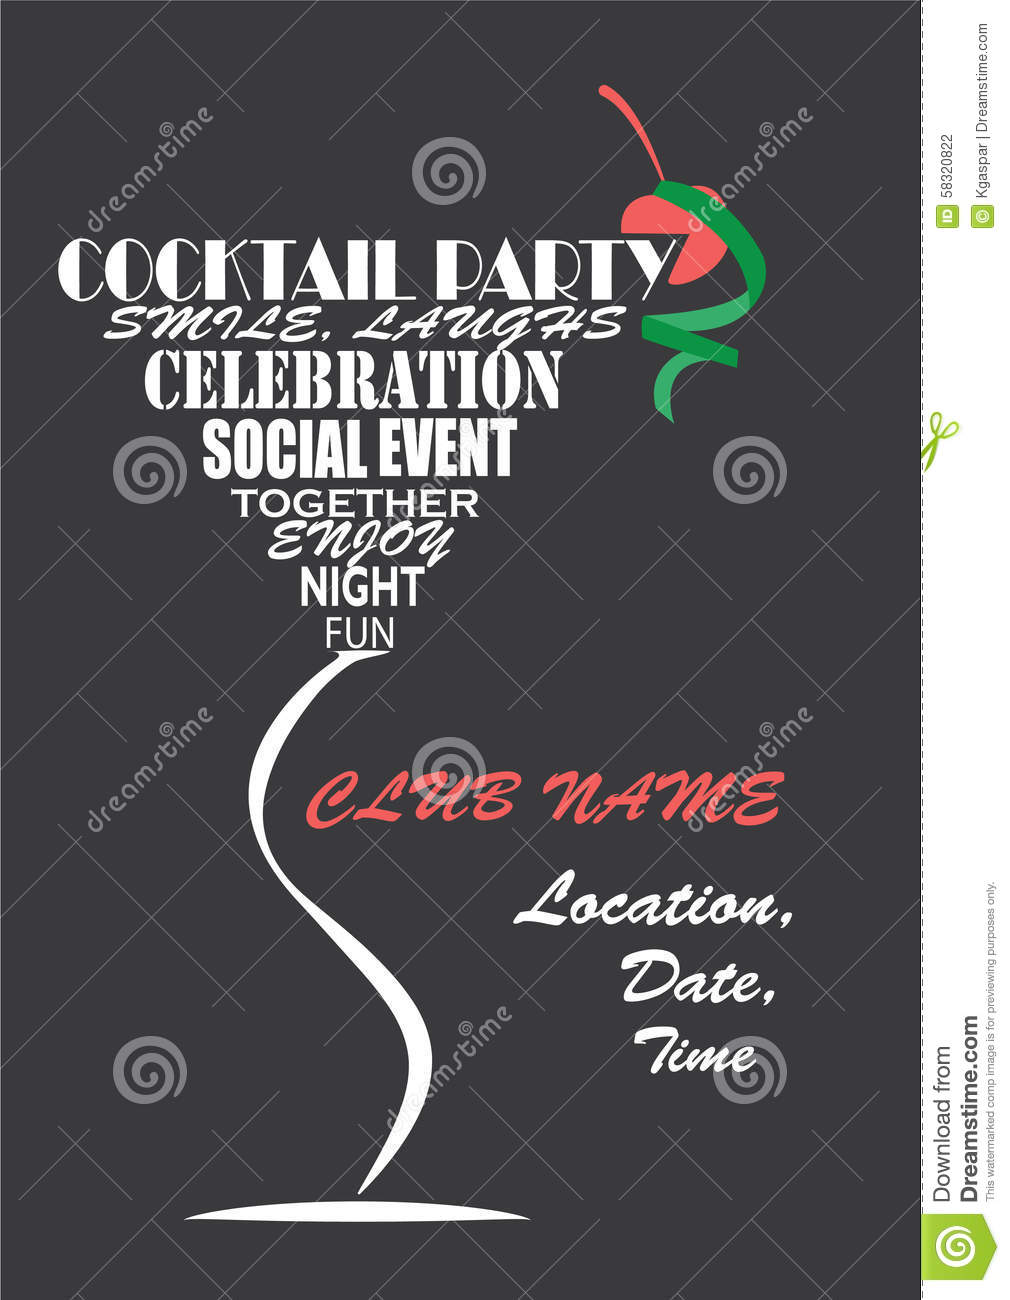 invitation for cocktail party